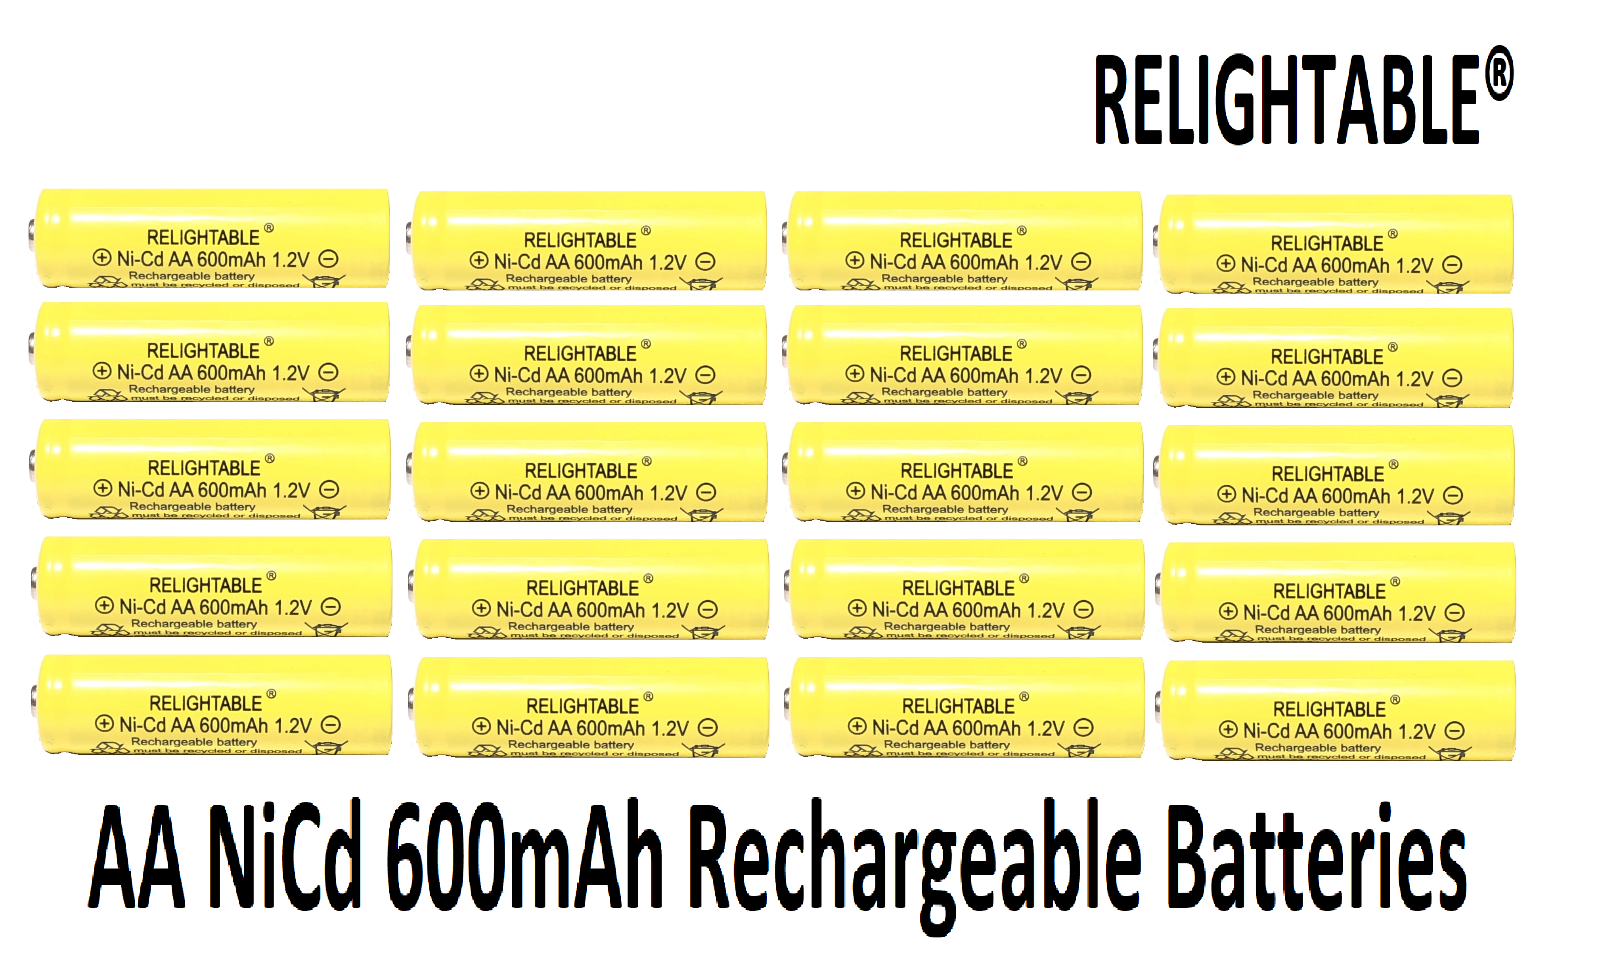 20 AA Rechargeable Batteries NiCd 600mAh 1.2v by RELIGHTABLE